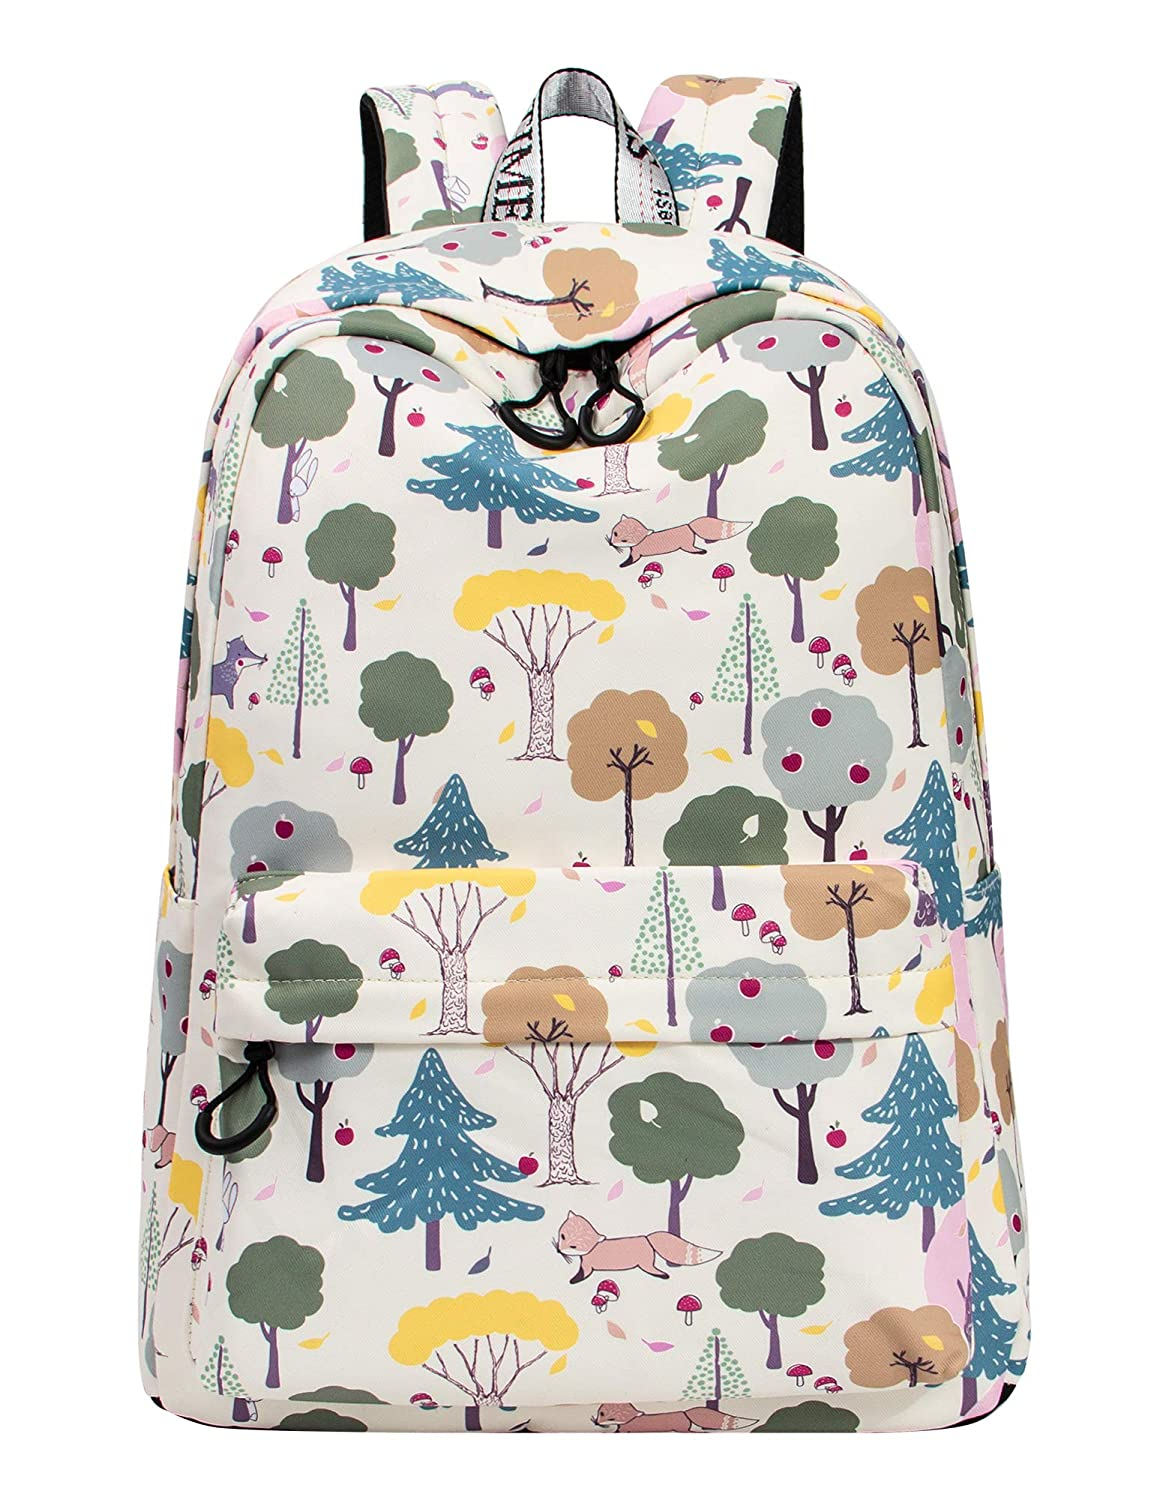 b14f0c5d37f3 Amazon.com  VOLINER Cute Fox Print Laptop Backpack Bookbag School Bags  Travel Daypack Beige  HeiHu